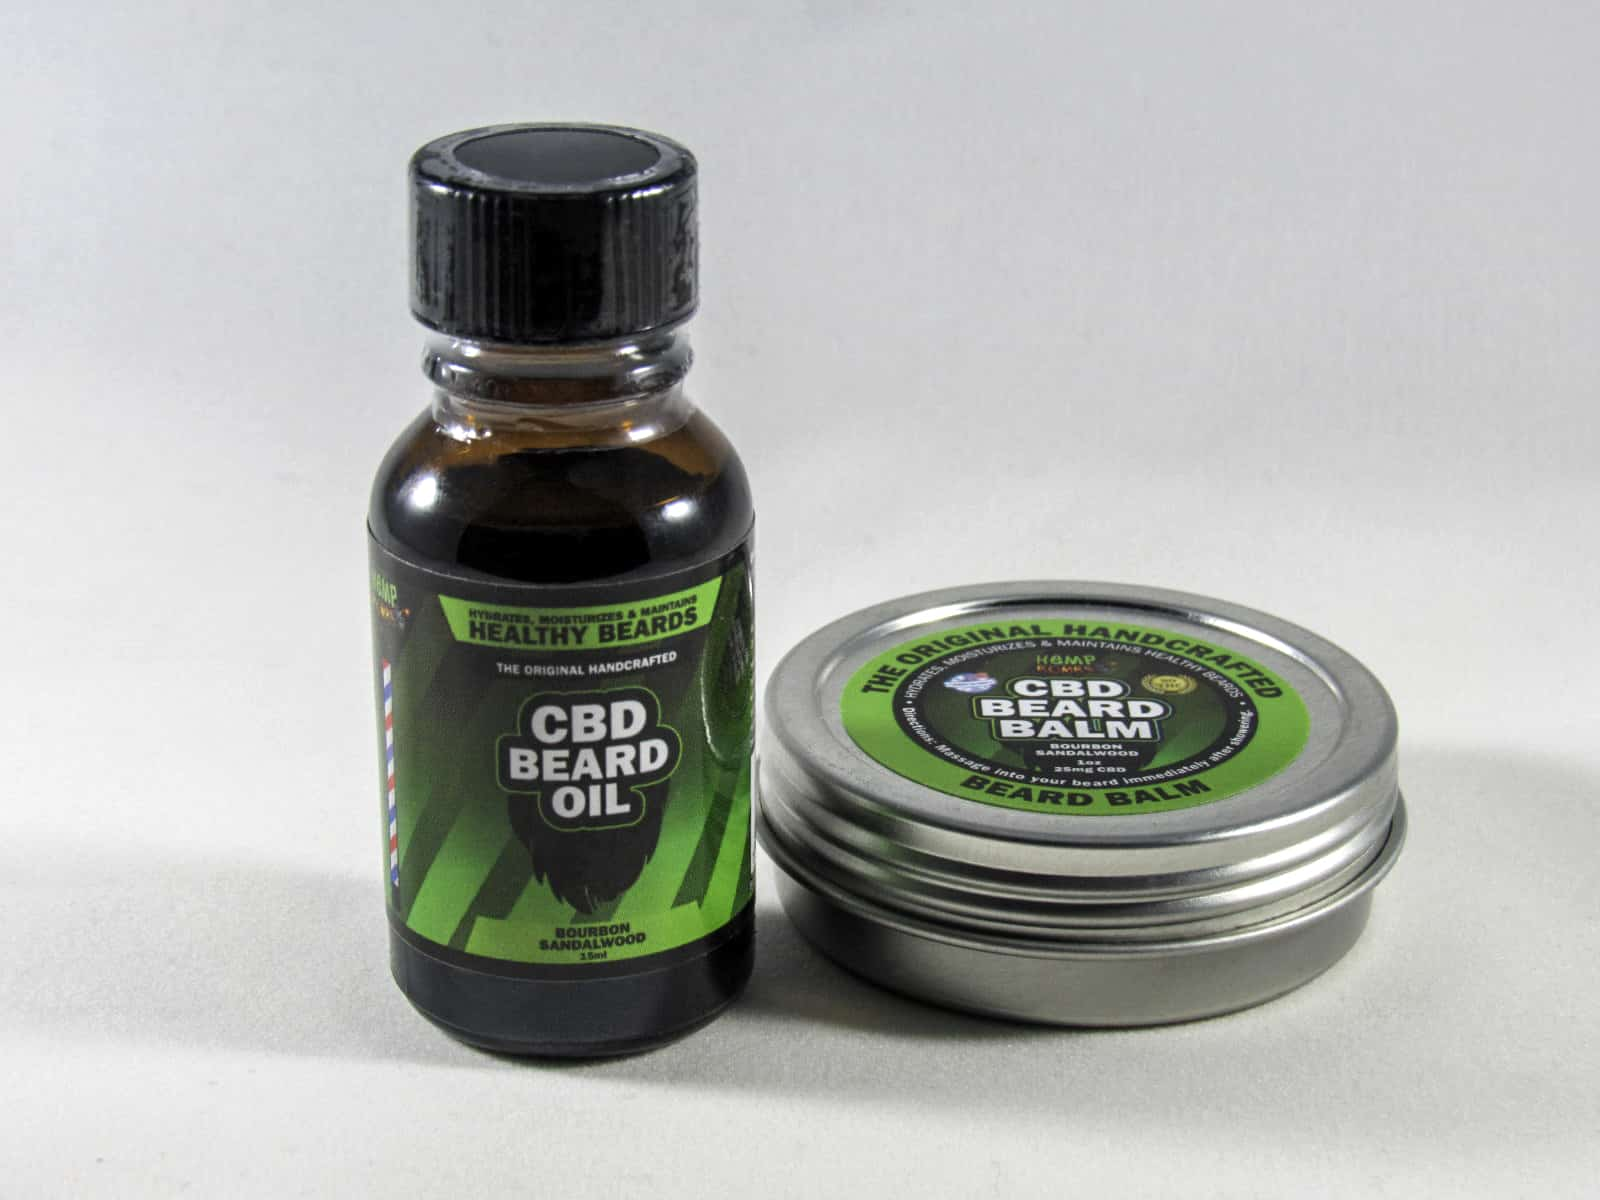 Hemp Bombs Beard Oil and Balm Review - Perfectly Relaxing